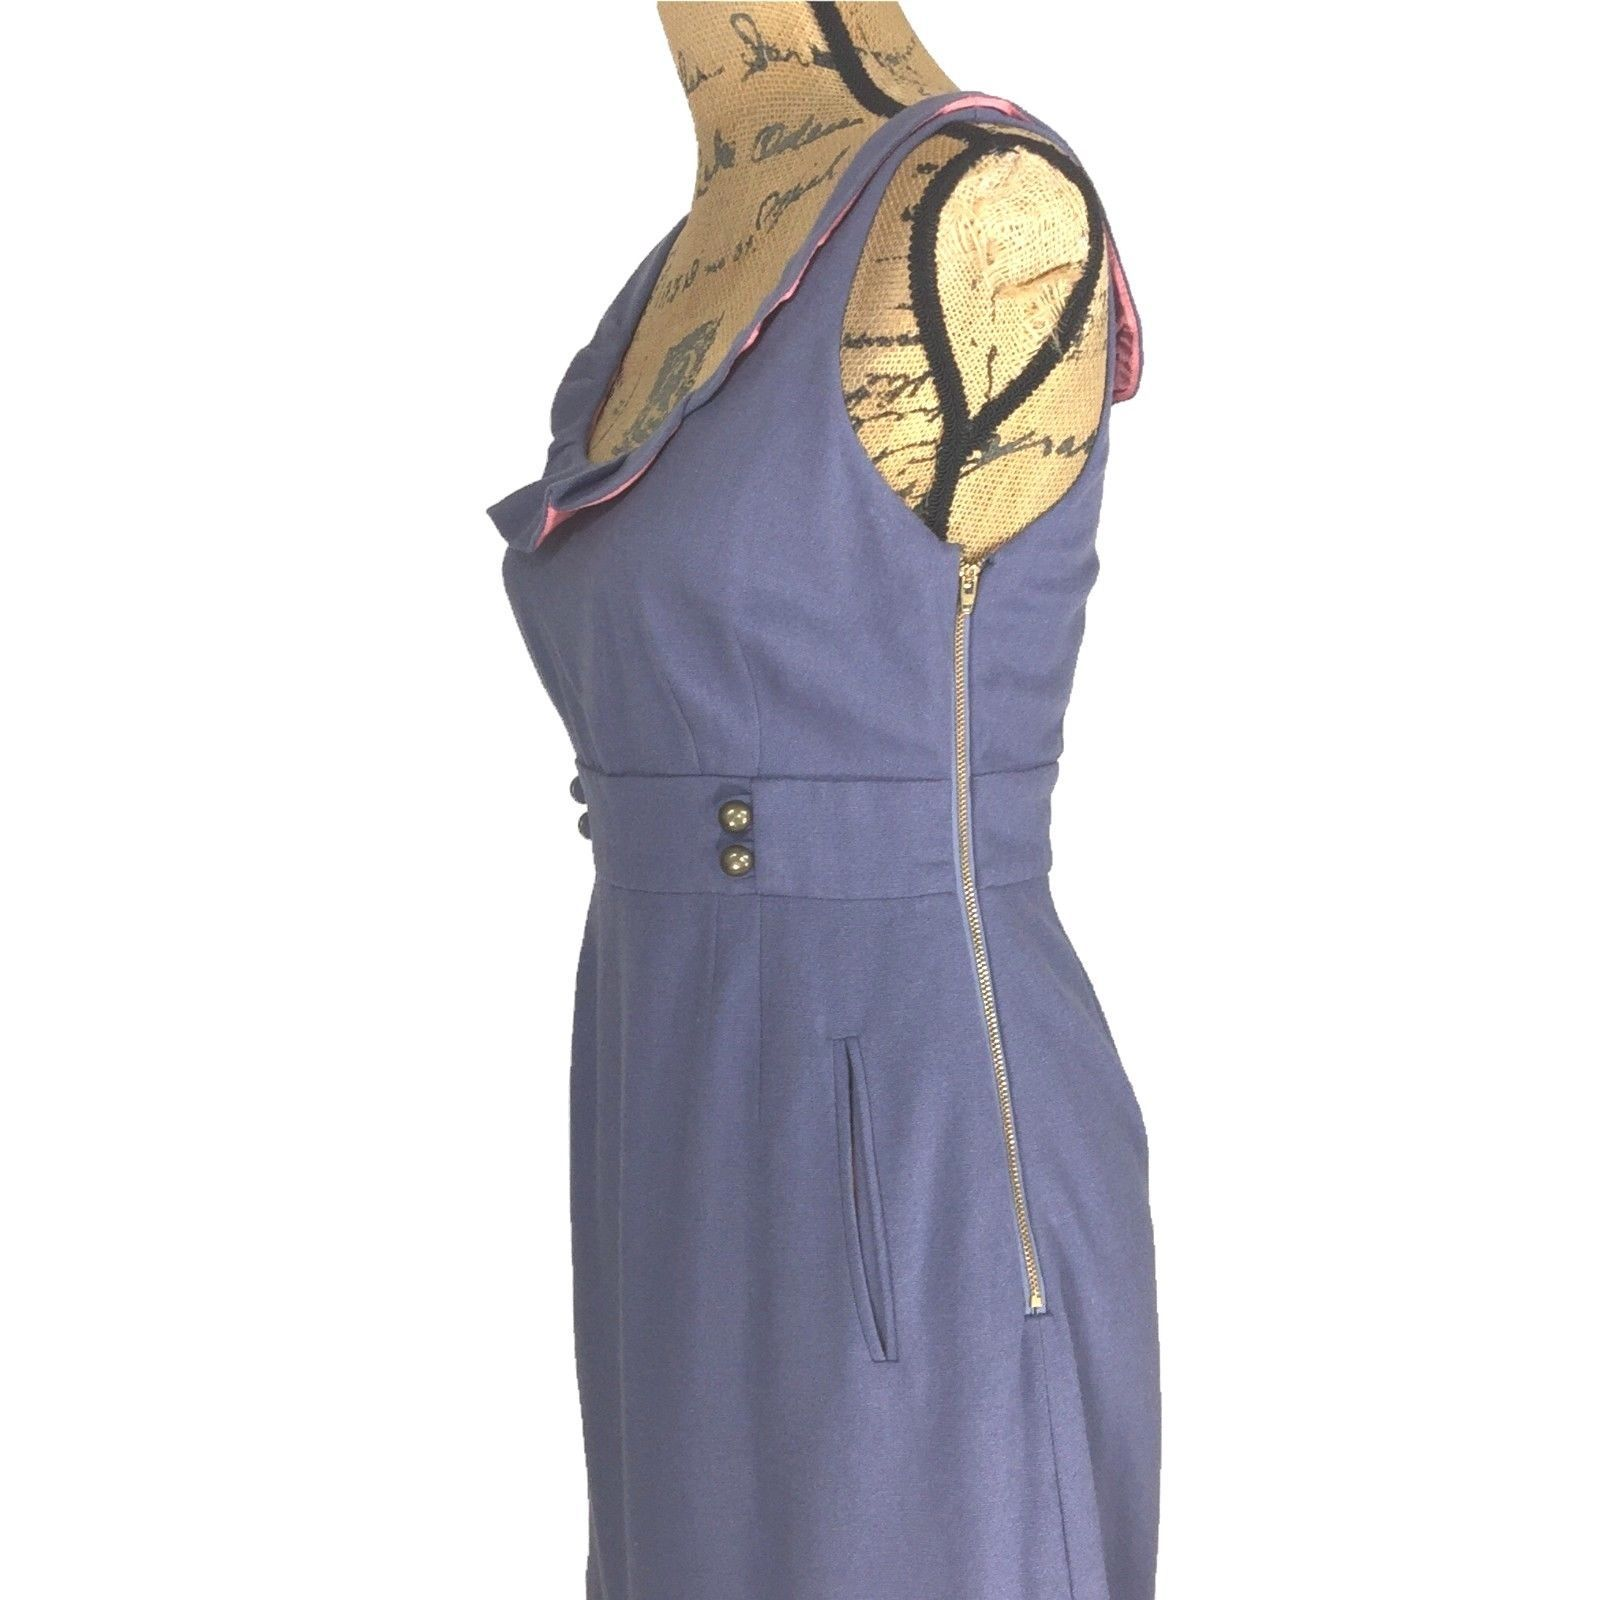 Anthropologie Dress 4 Blue Ruffle Button Pocket MOULINETTE SOEURS Familiar Place